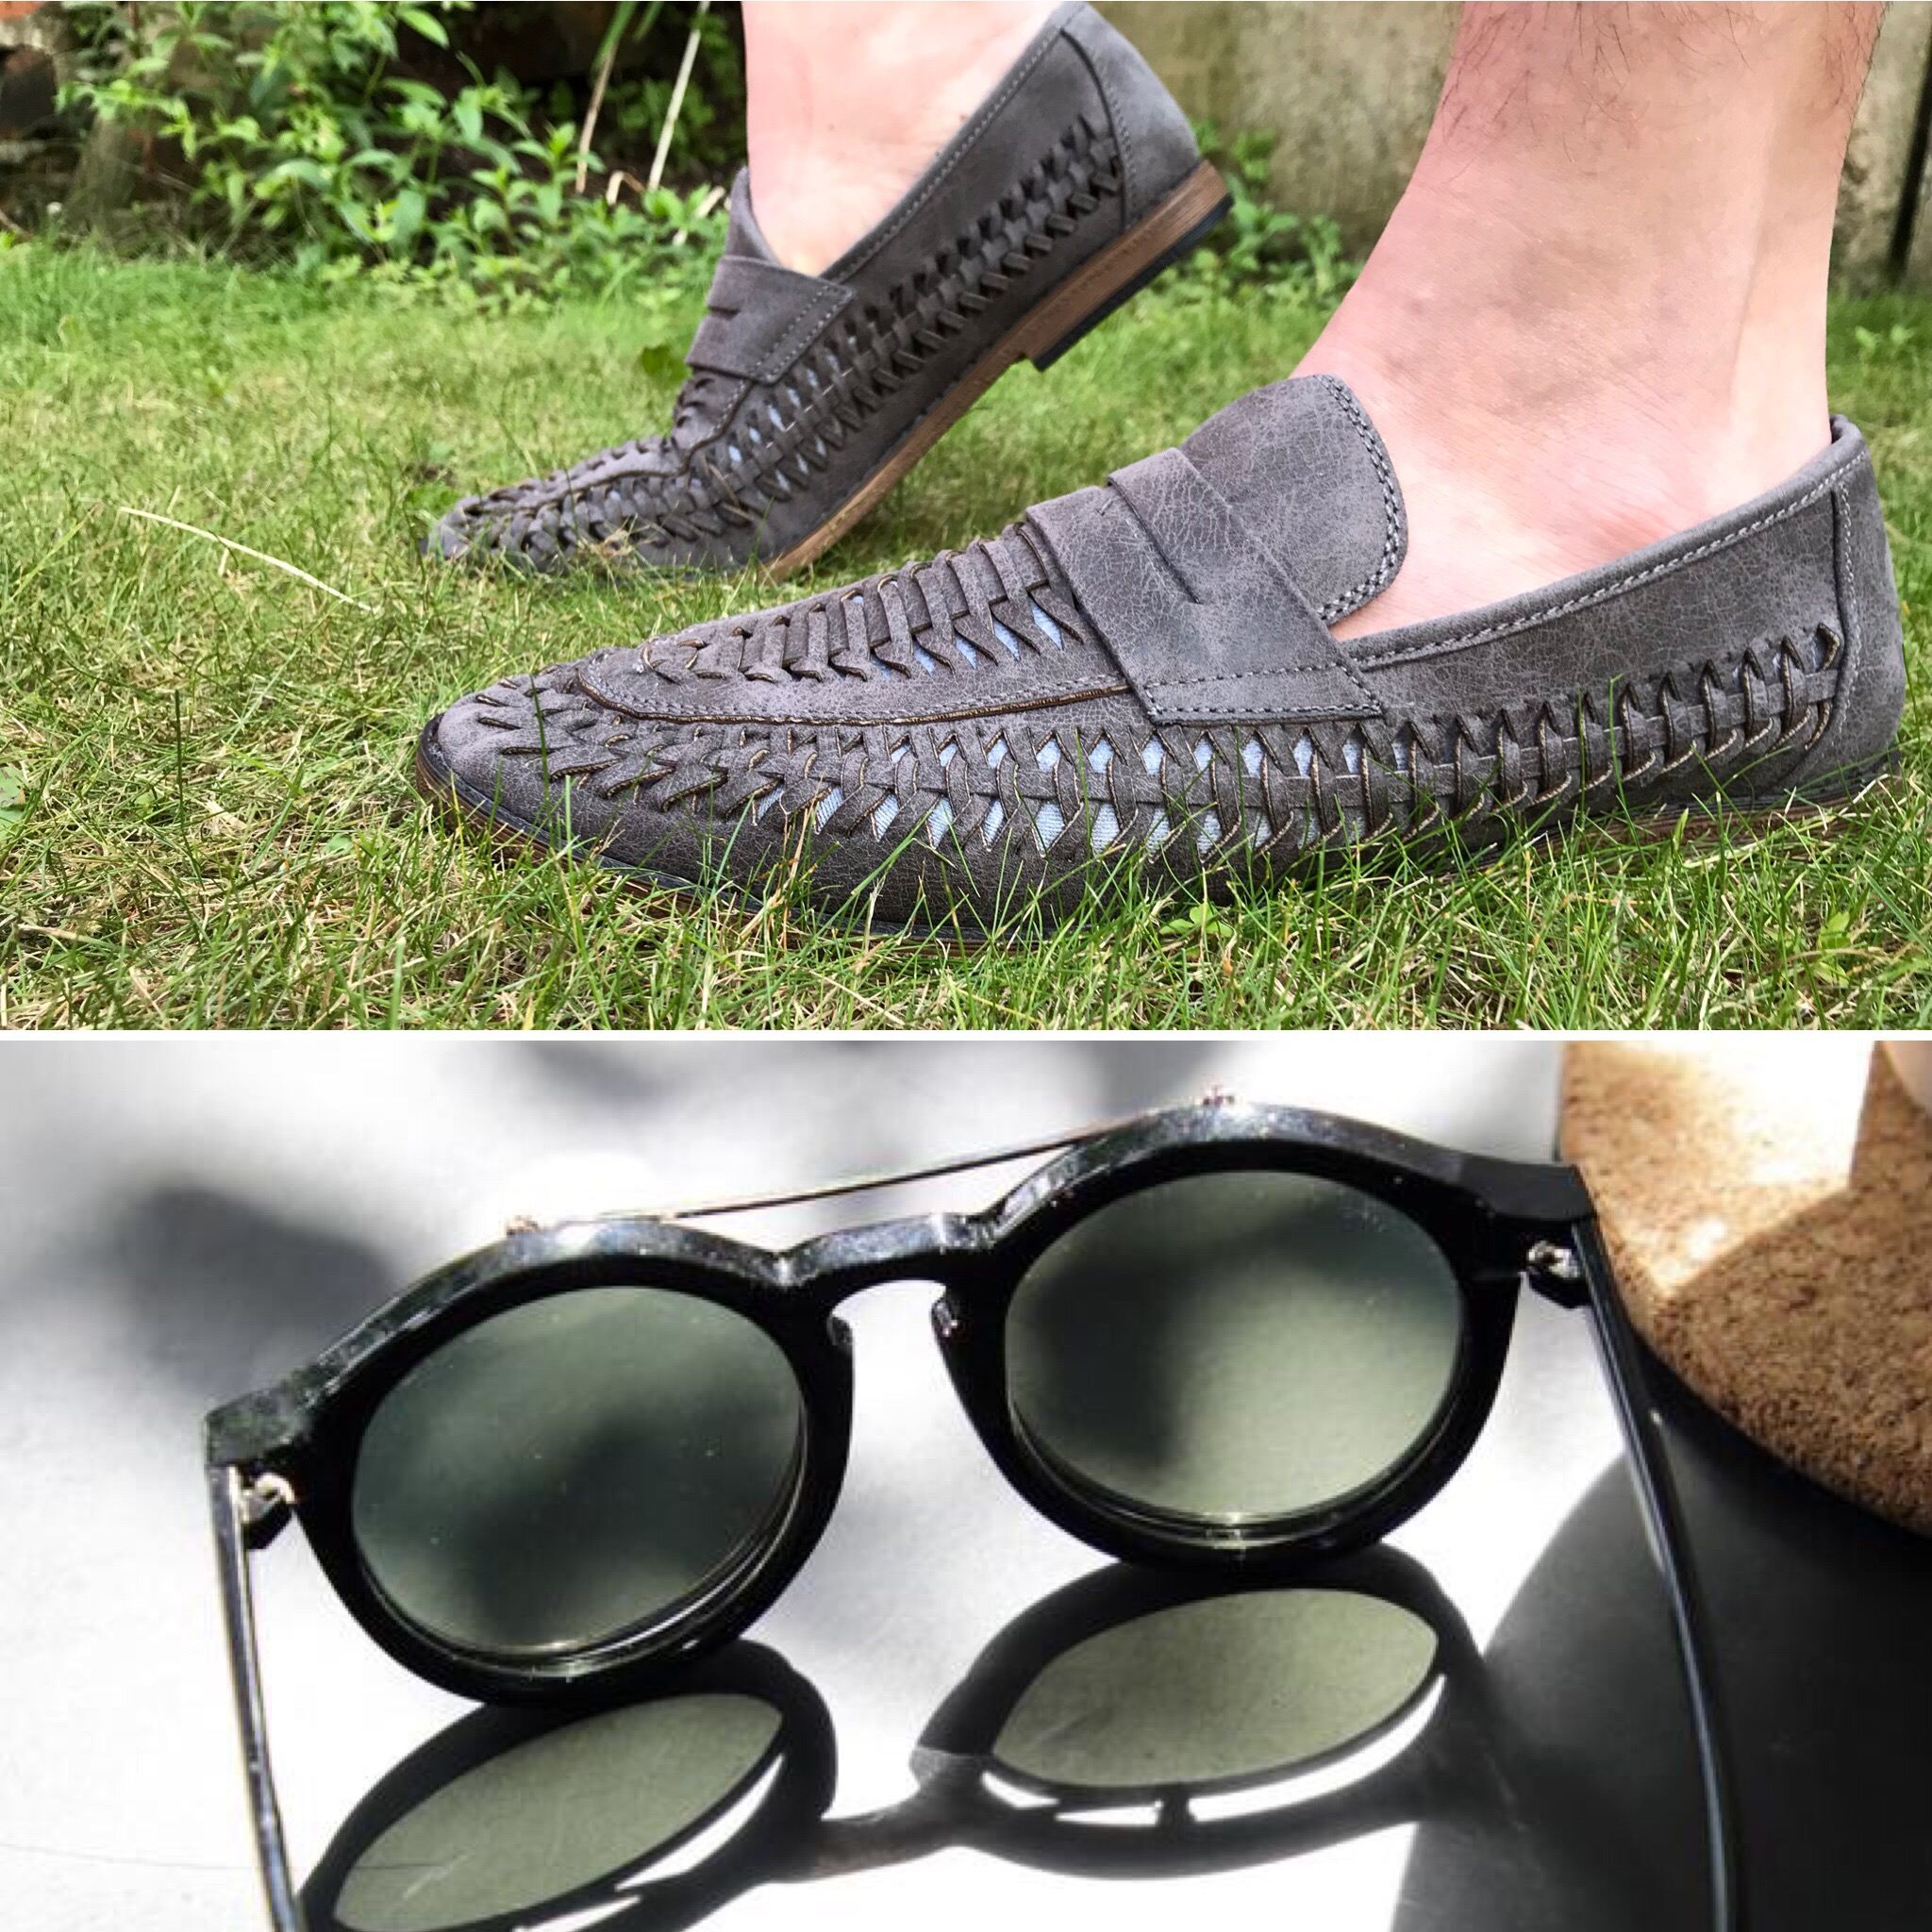 Men's summer shoes, summer shoes, wicker shoe, slip on shoes, sunglasses, menswear, men's sunglasses, intu Derby, intu Derby shopping centre, intu